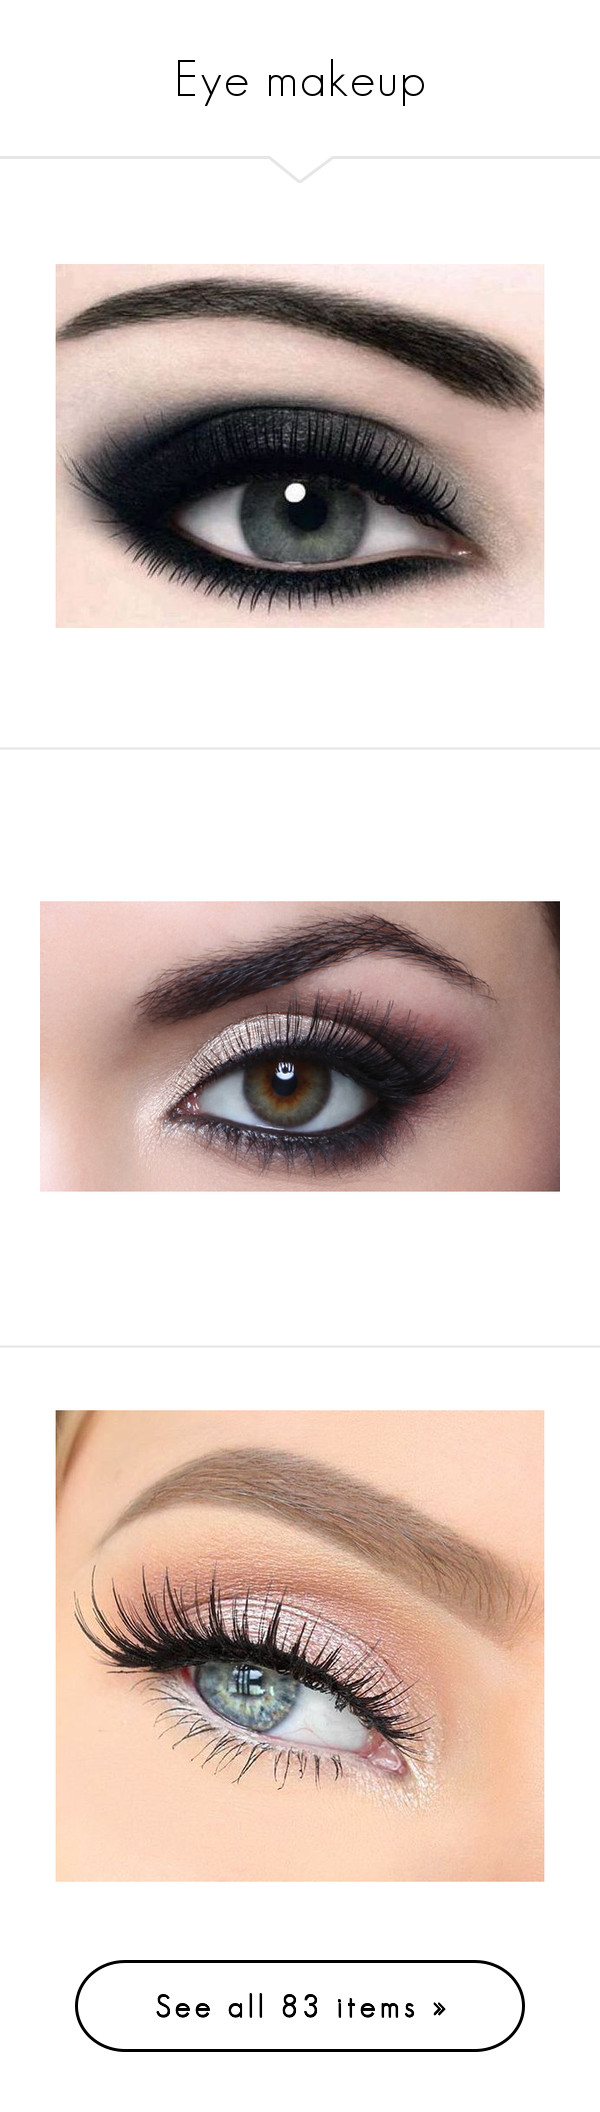 Eye Makeup By Maddie Wolf 97 Liked On Polyvore Featuring Beauty